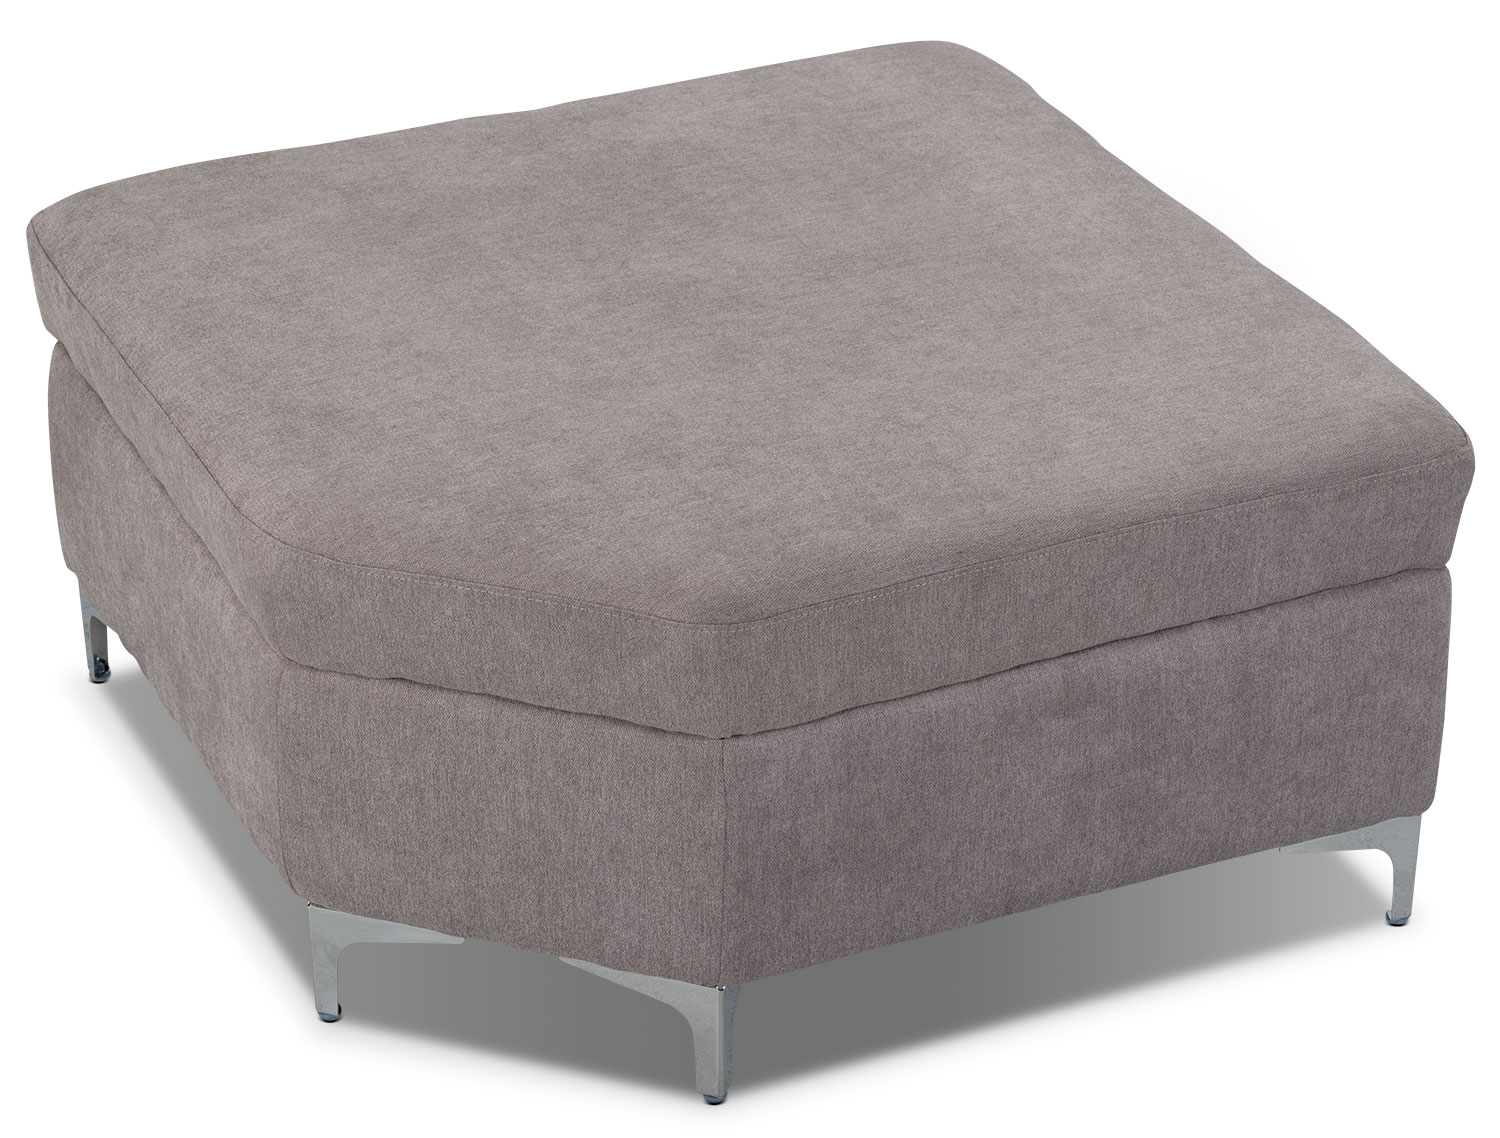 London linen look fabric storage ottoman dove the brick for Storage ottomans fabric